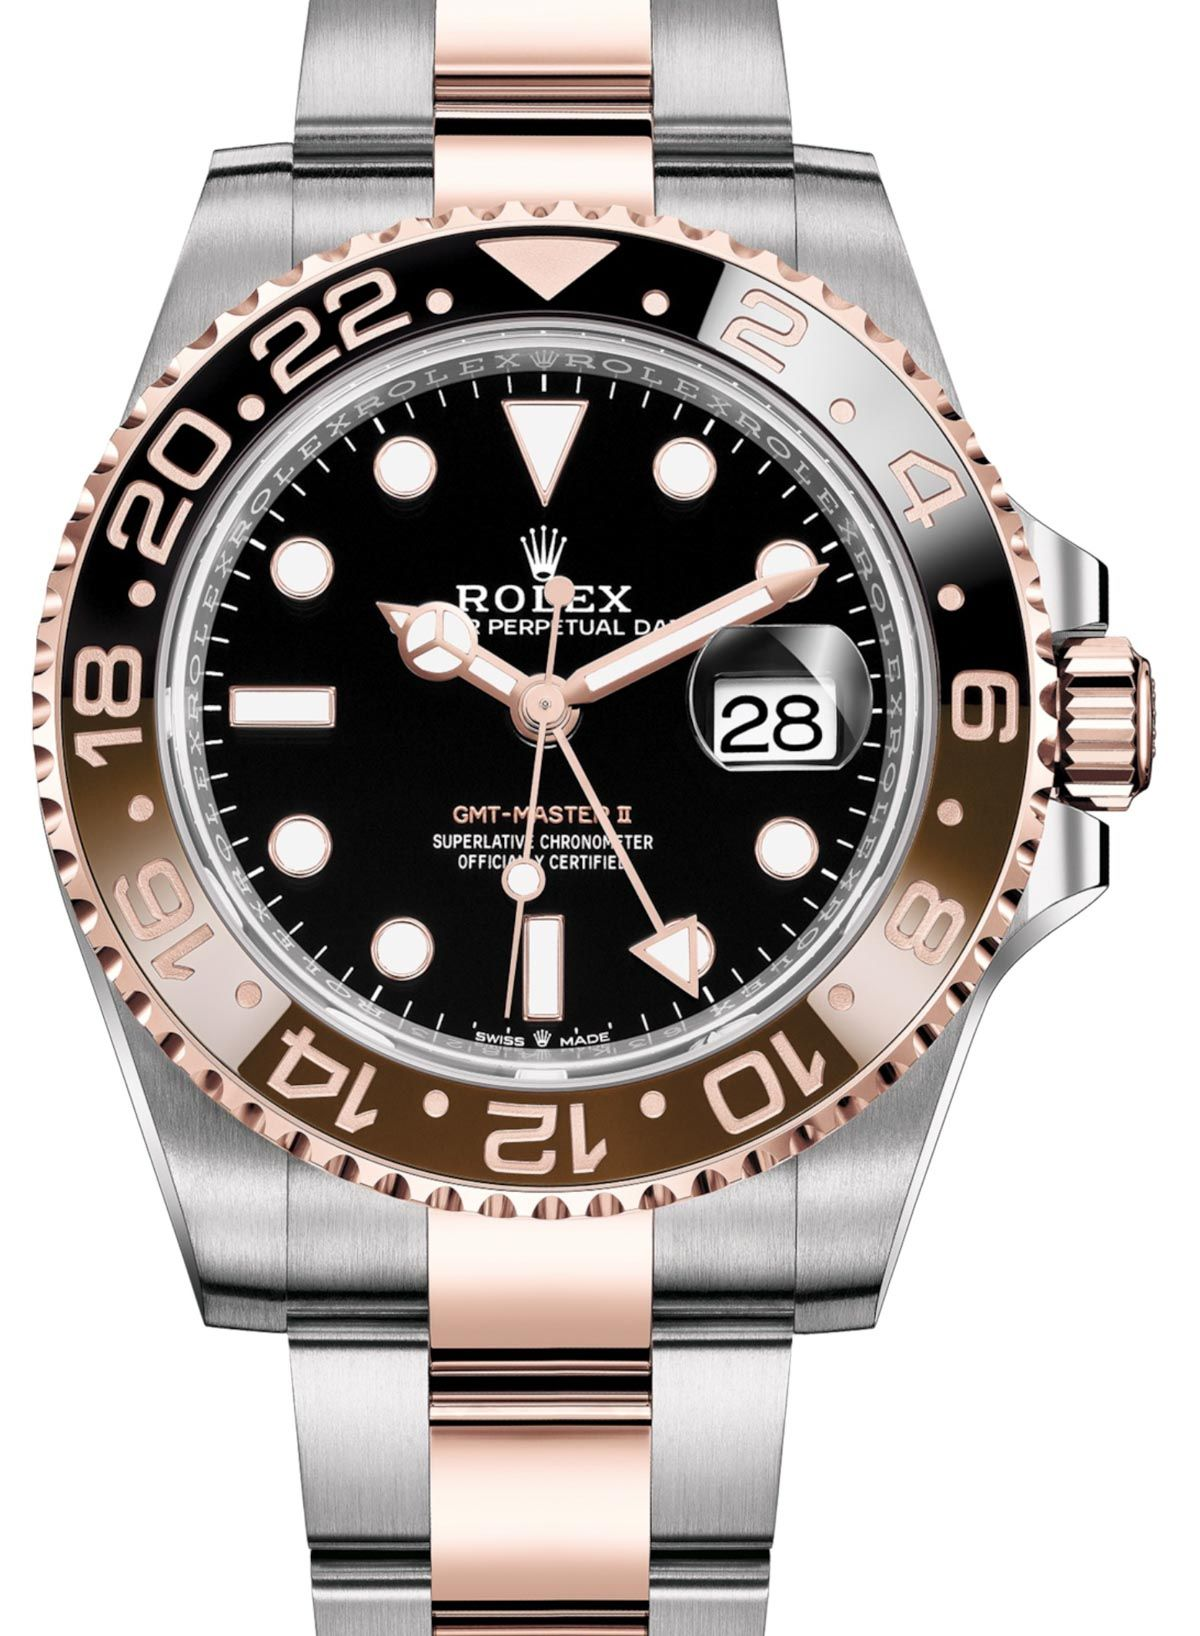 Rolex Gmt Master Ii Root Beer In Rolesor Everose Gold For 2018 Ablogtowatch Luxury Watches For Men Gold Watch Men Rolex Watches For Men